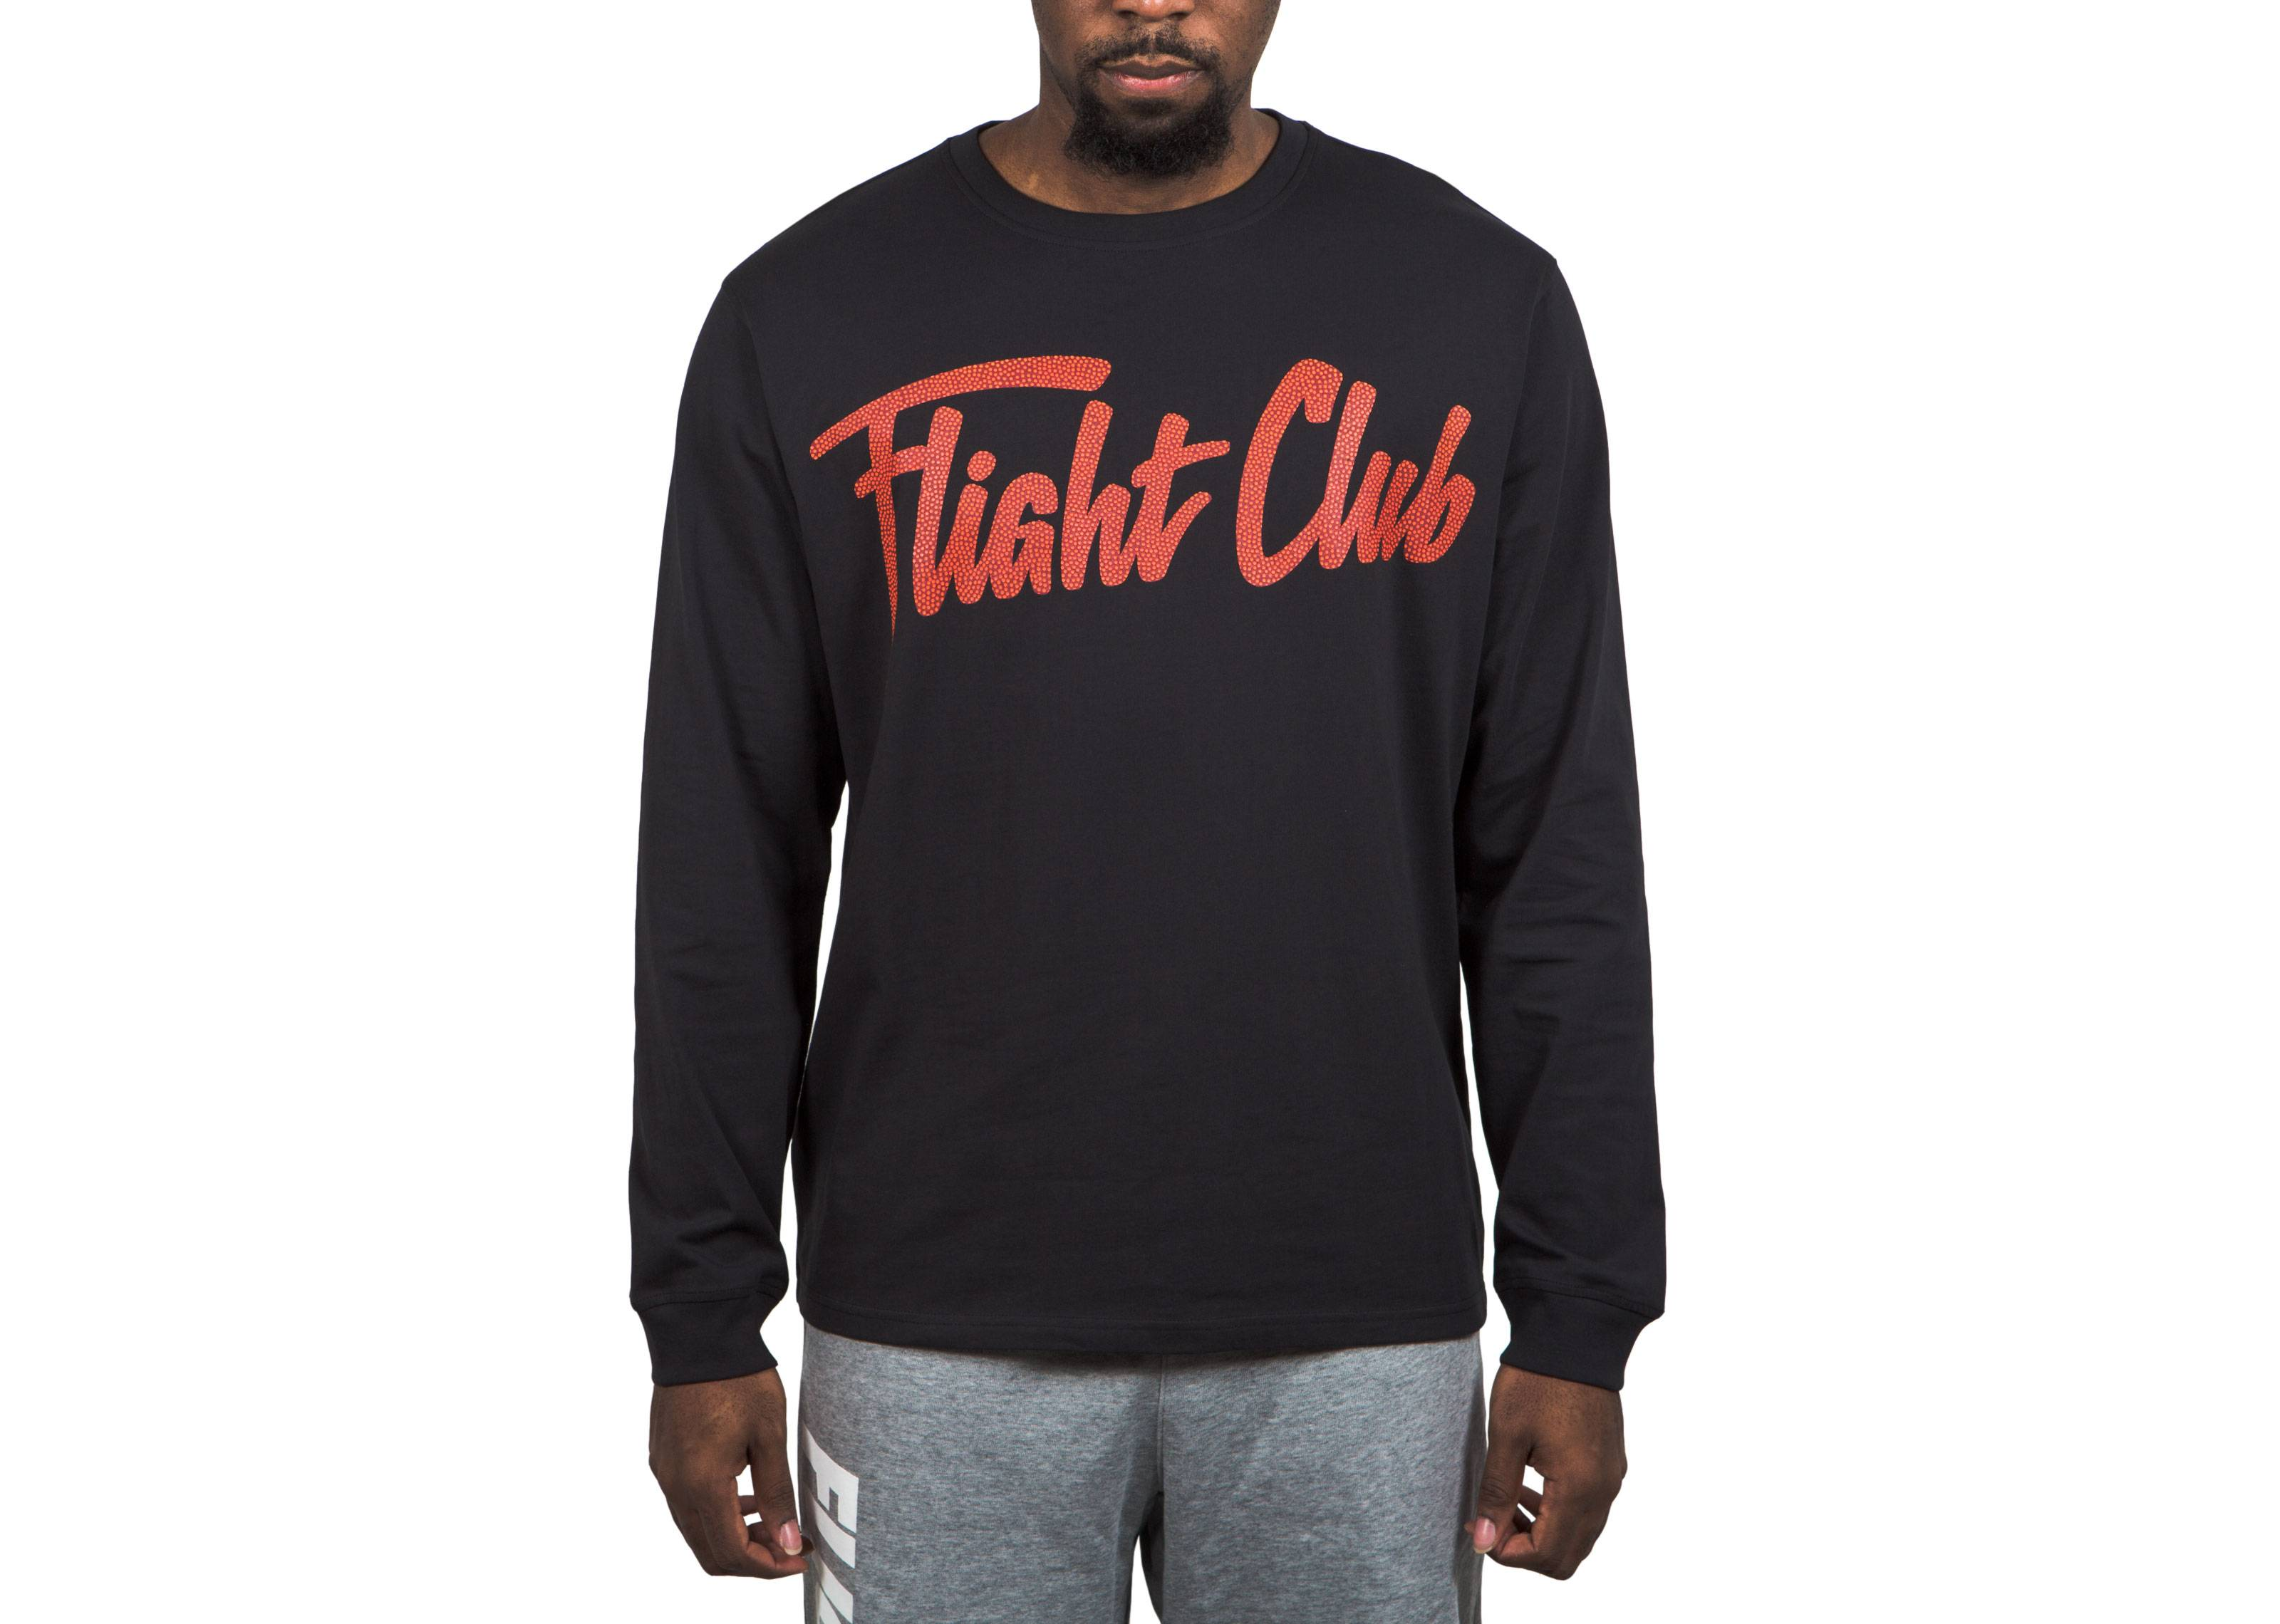 19147a7d3005 Script LS Cotton T-Shirt - Flight Club - FCT03 17 2 - black red ...